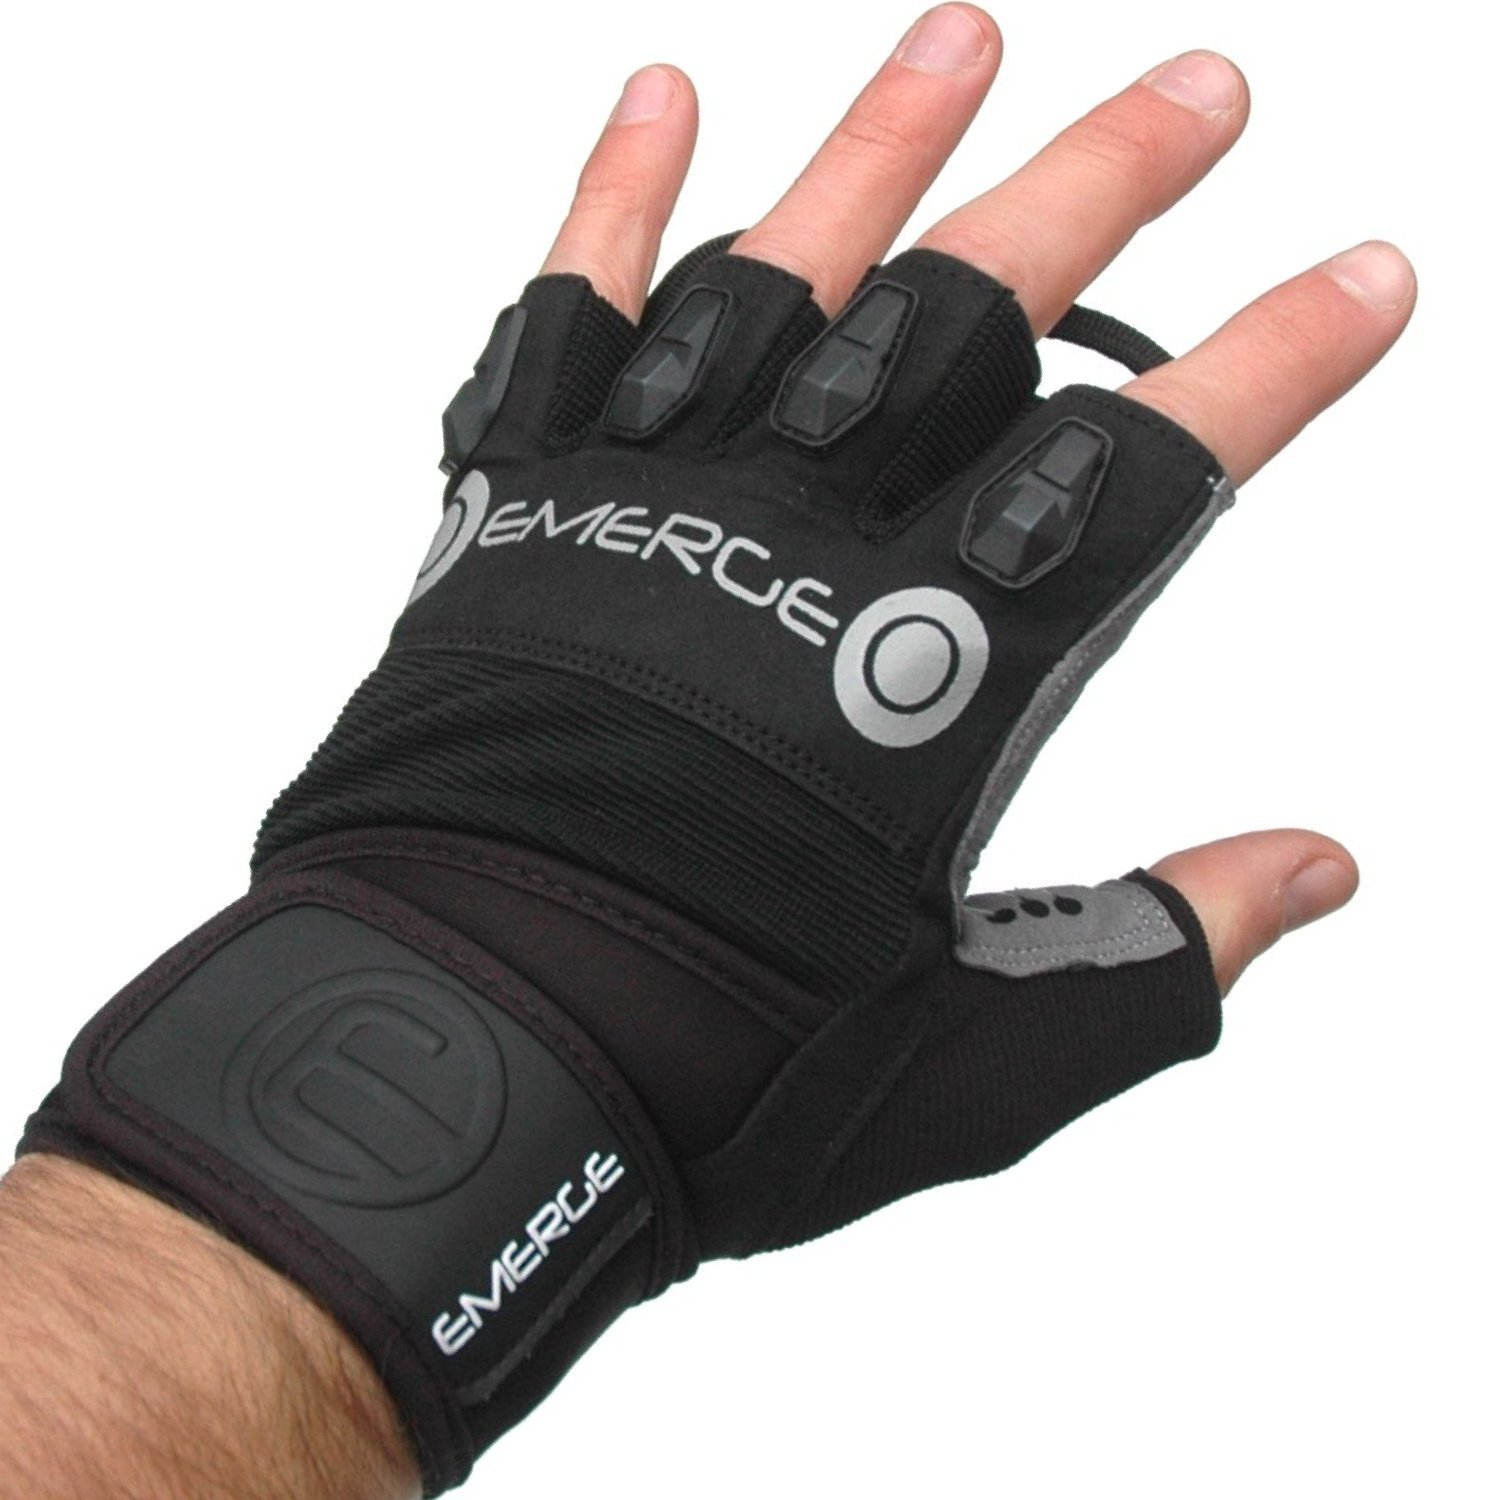 OX4 Weightlifting Gloves